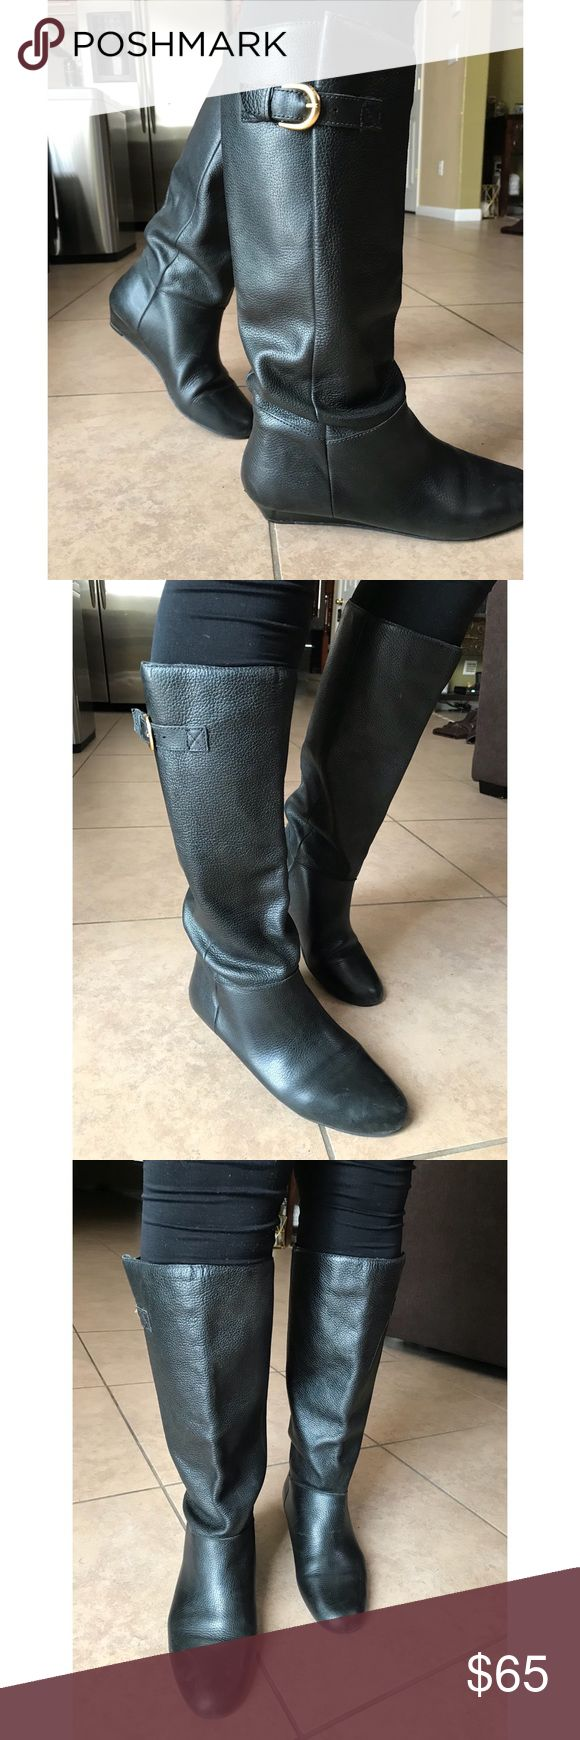 Steve Madden Intyce Rider Boot Thee classic Intyce rider boot. Genuine leather. Pairs great with just about any and everything. This boot is one of the best! I've owned 3 pairs and eventually passed em all down after getting my money's worth. This is the last of the bunch... and they're all yours! Steve Madden Shoes Over the Knee Boots